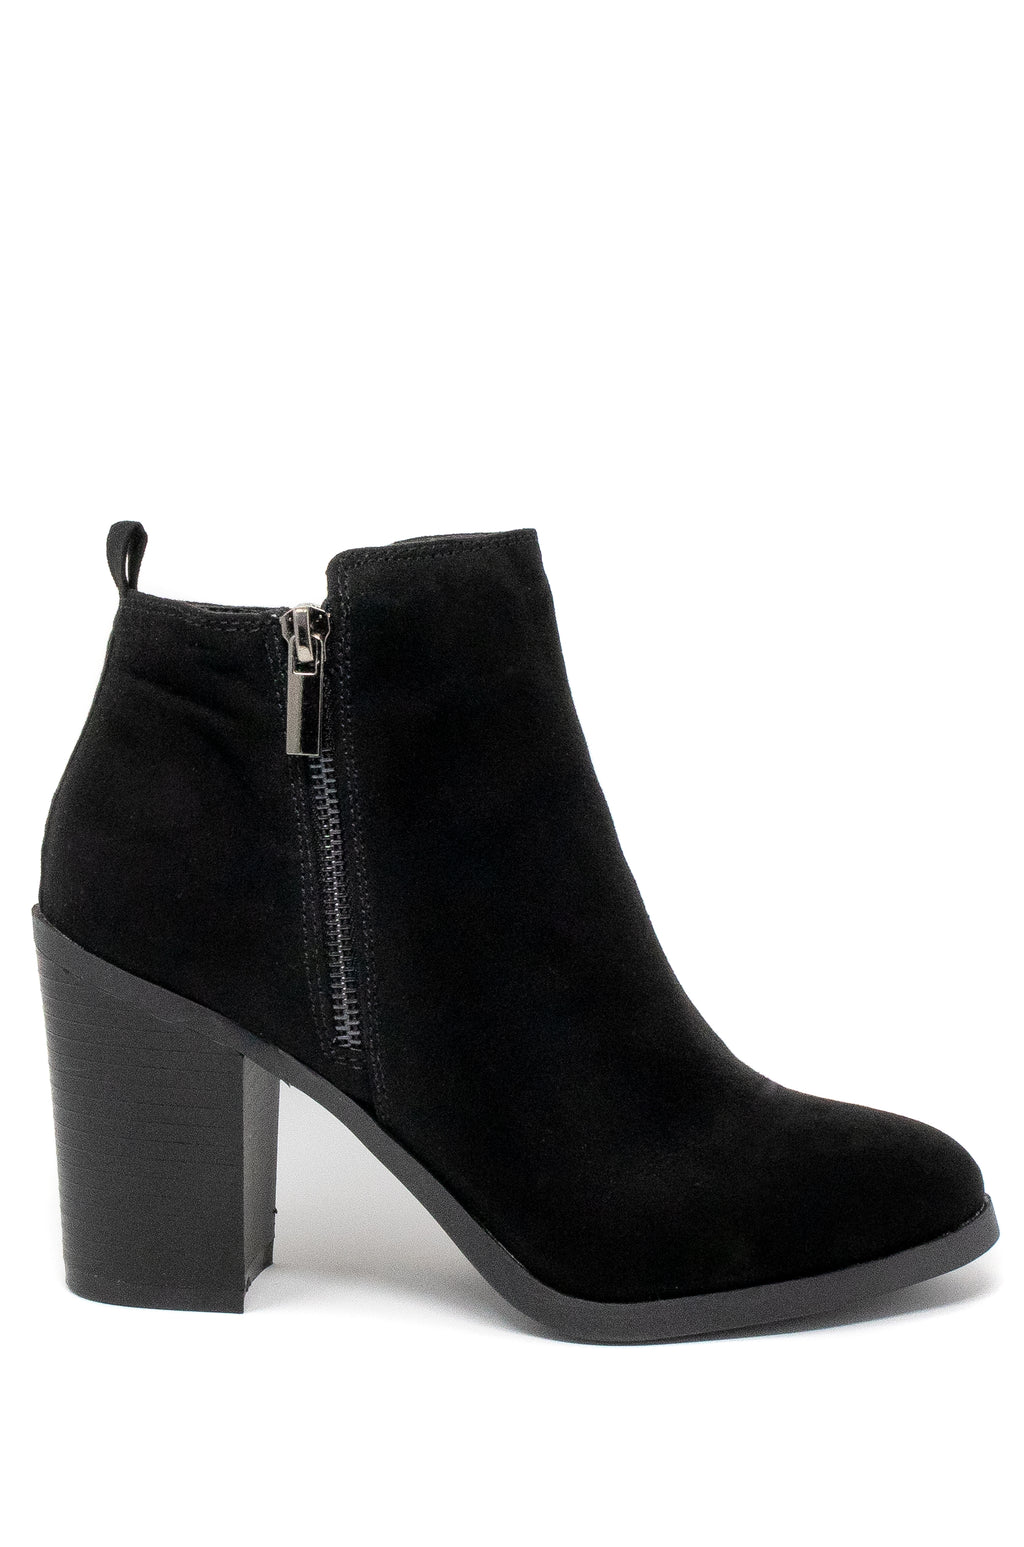 Call On Me - Black Almond Toe Booties